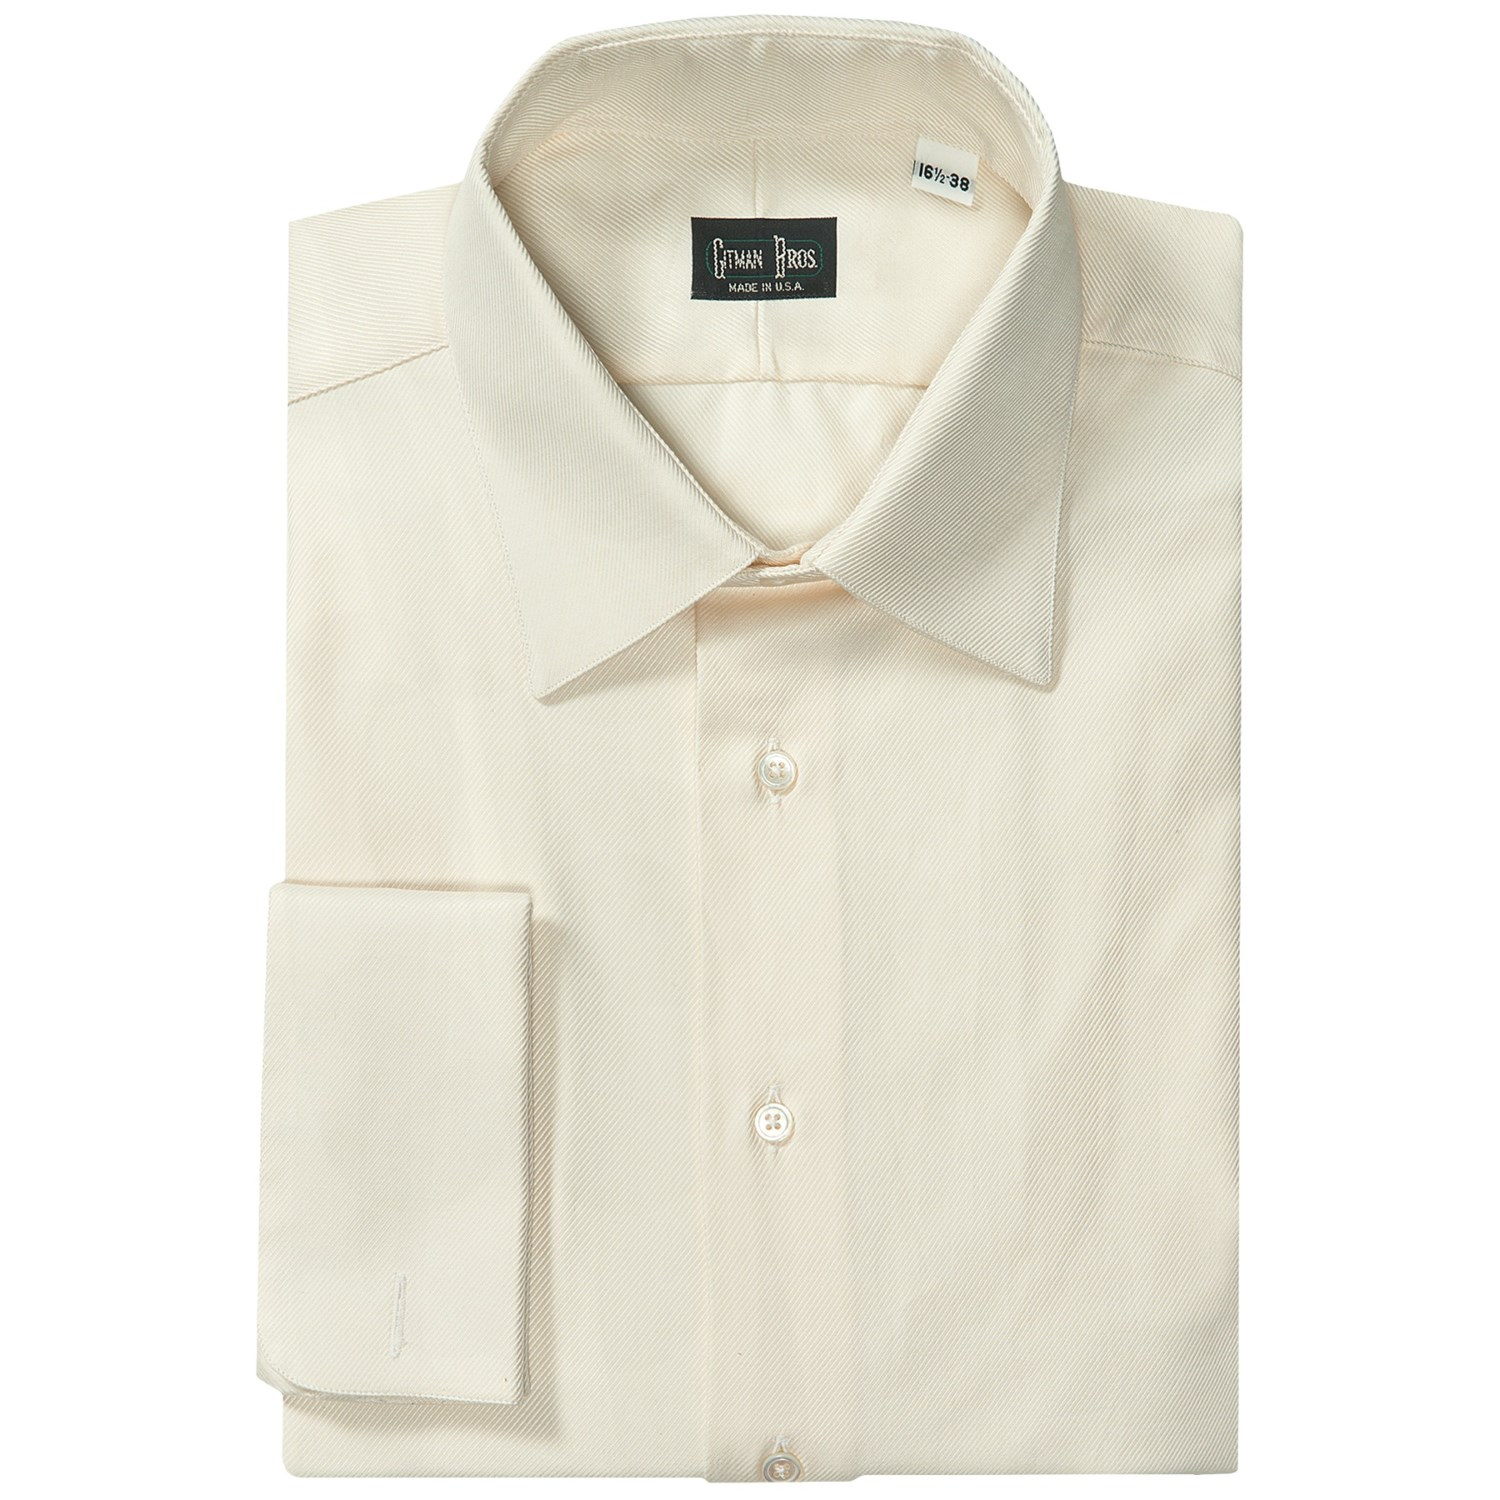 Gitman brothers pinpoint cotton dress shirt french cuff for Mens dress shirts french cuffs